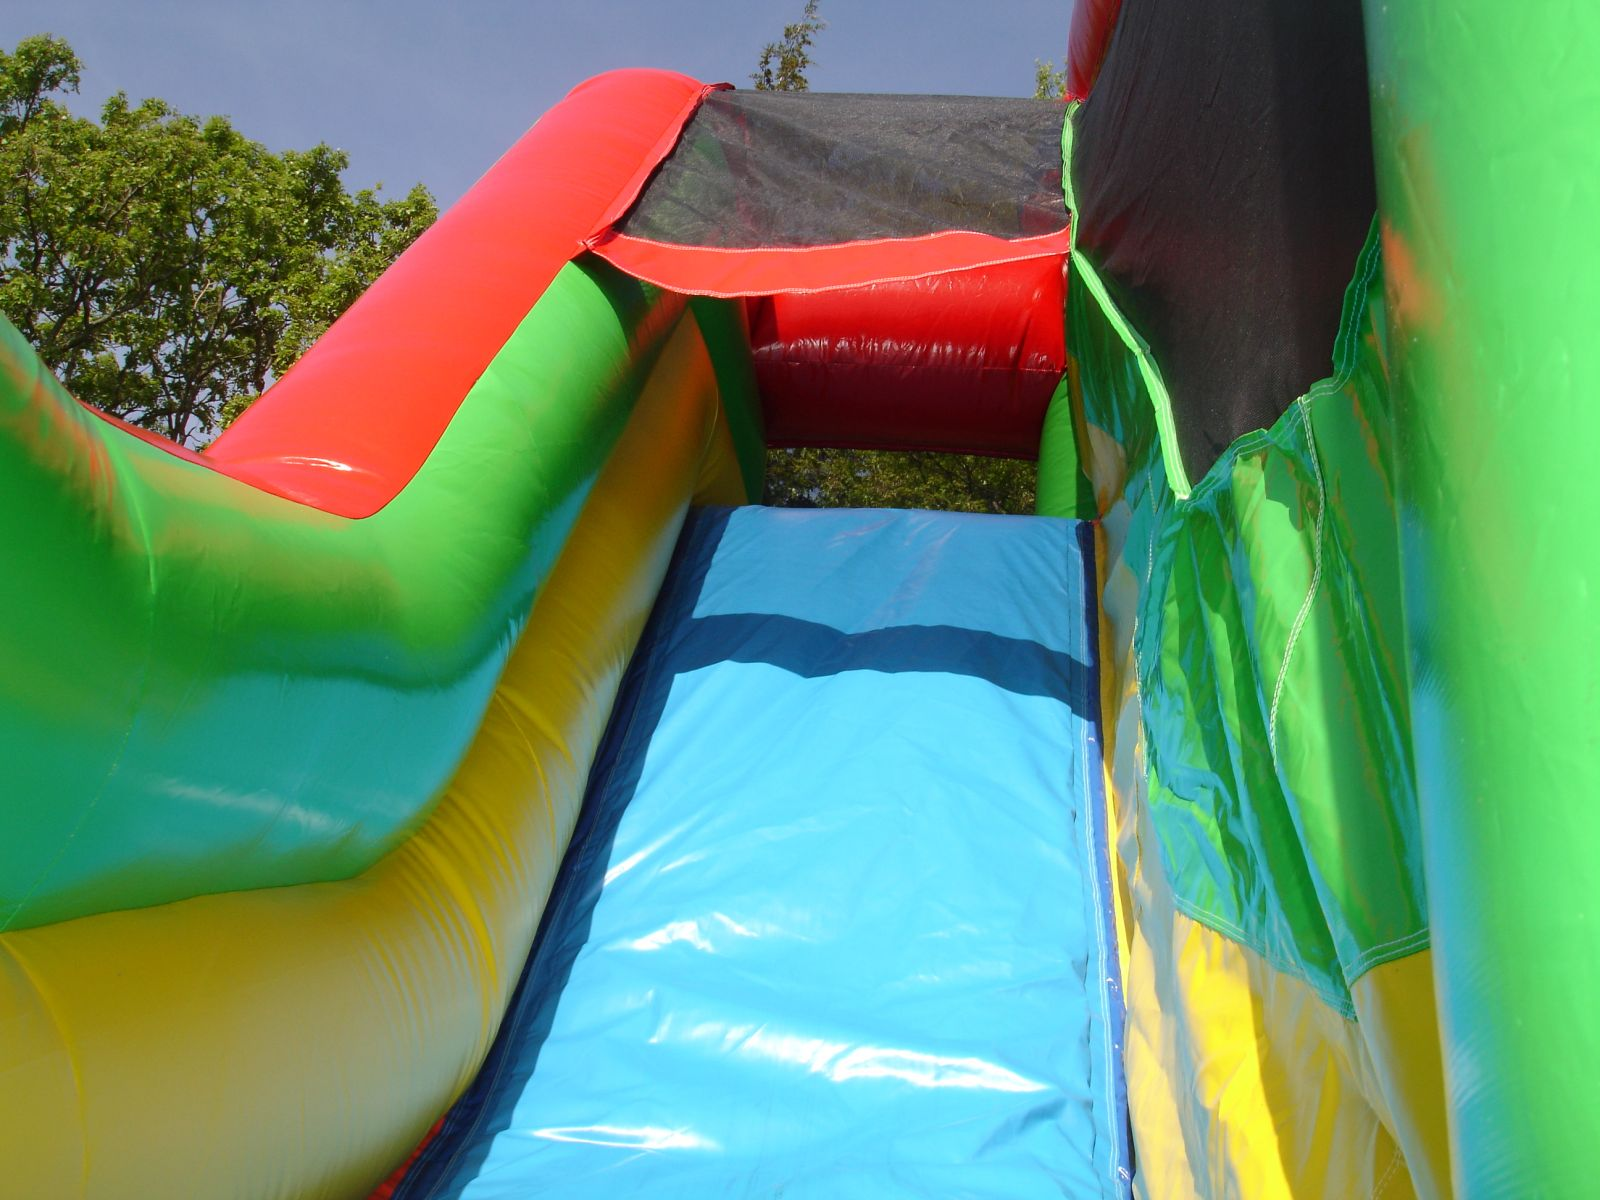 View of the slide on Castle Combo